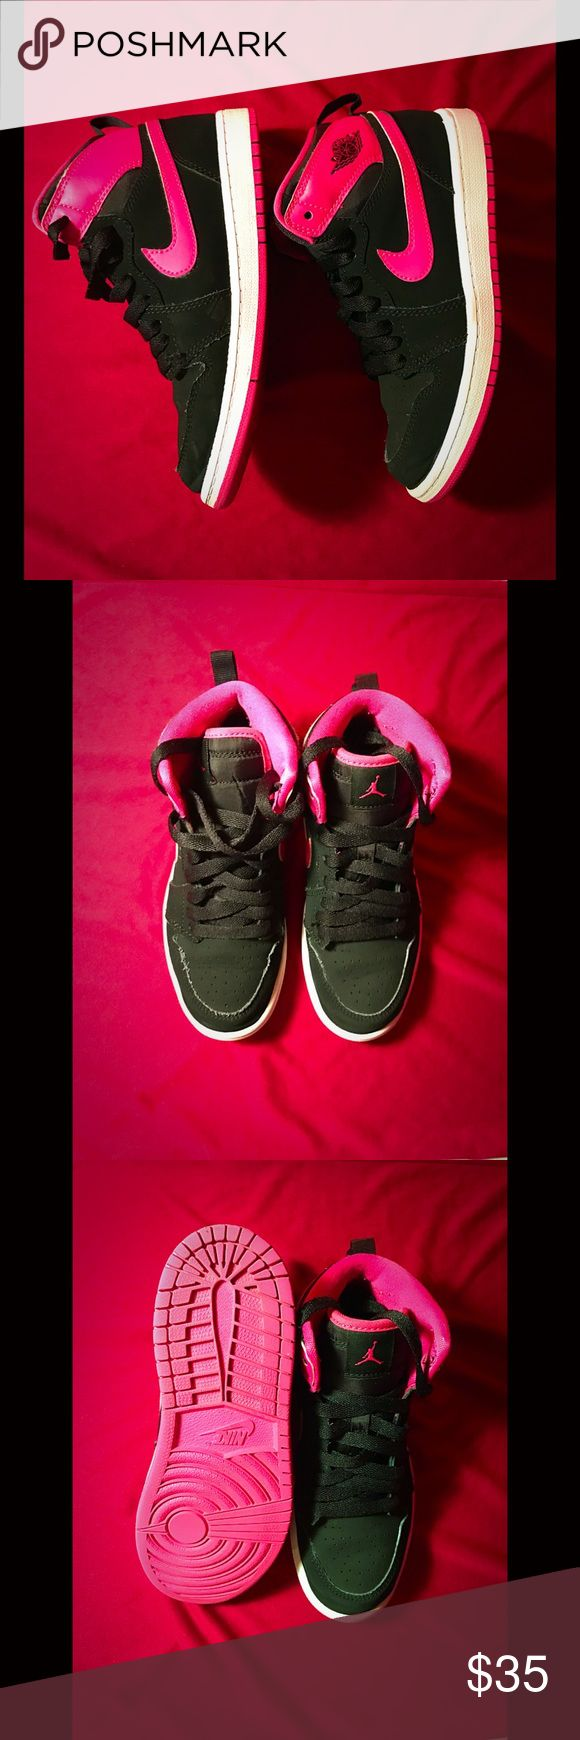 Girls Nike Jordans Girls Nike black, white and pink suede Jordans. These were pre-loved but are in excellent condition.  Worn by a little girl who worn school uniform and tennis sneakers (for tennis) so these hardly got any play time. Size: 1.5M Nike Shoes Sneakers